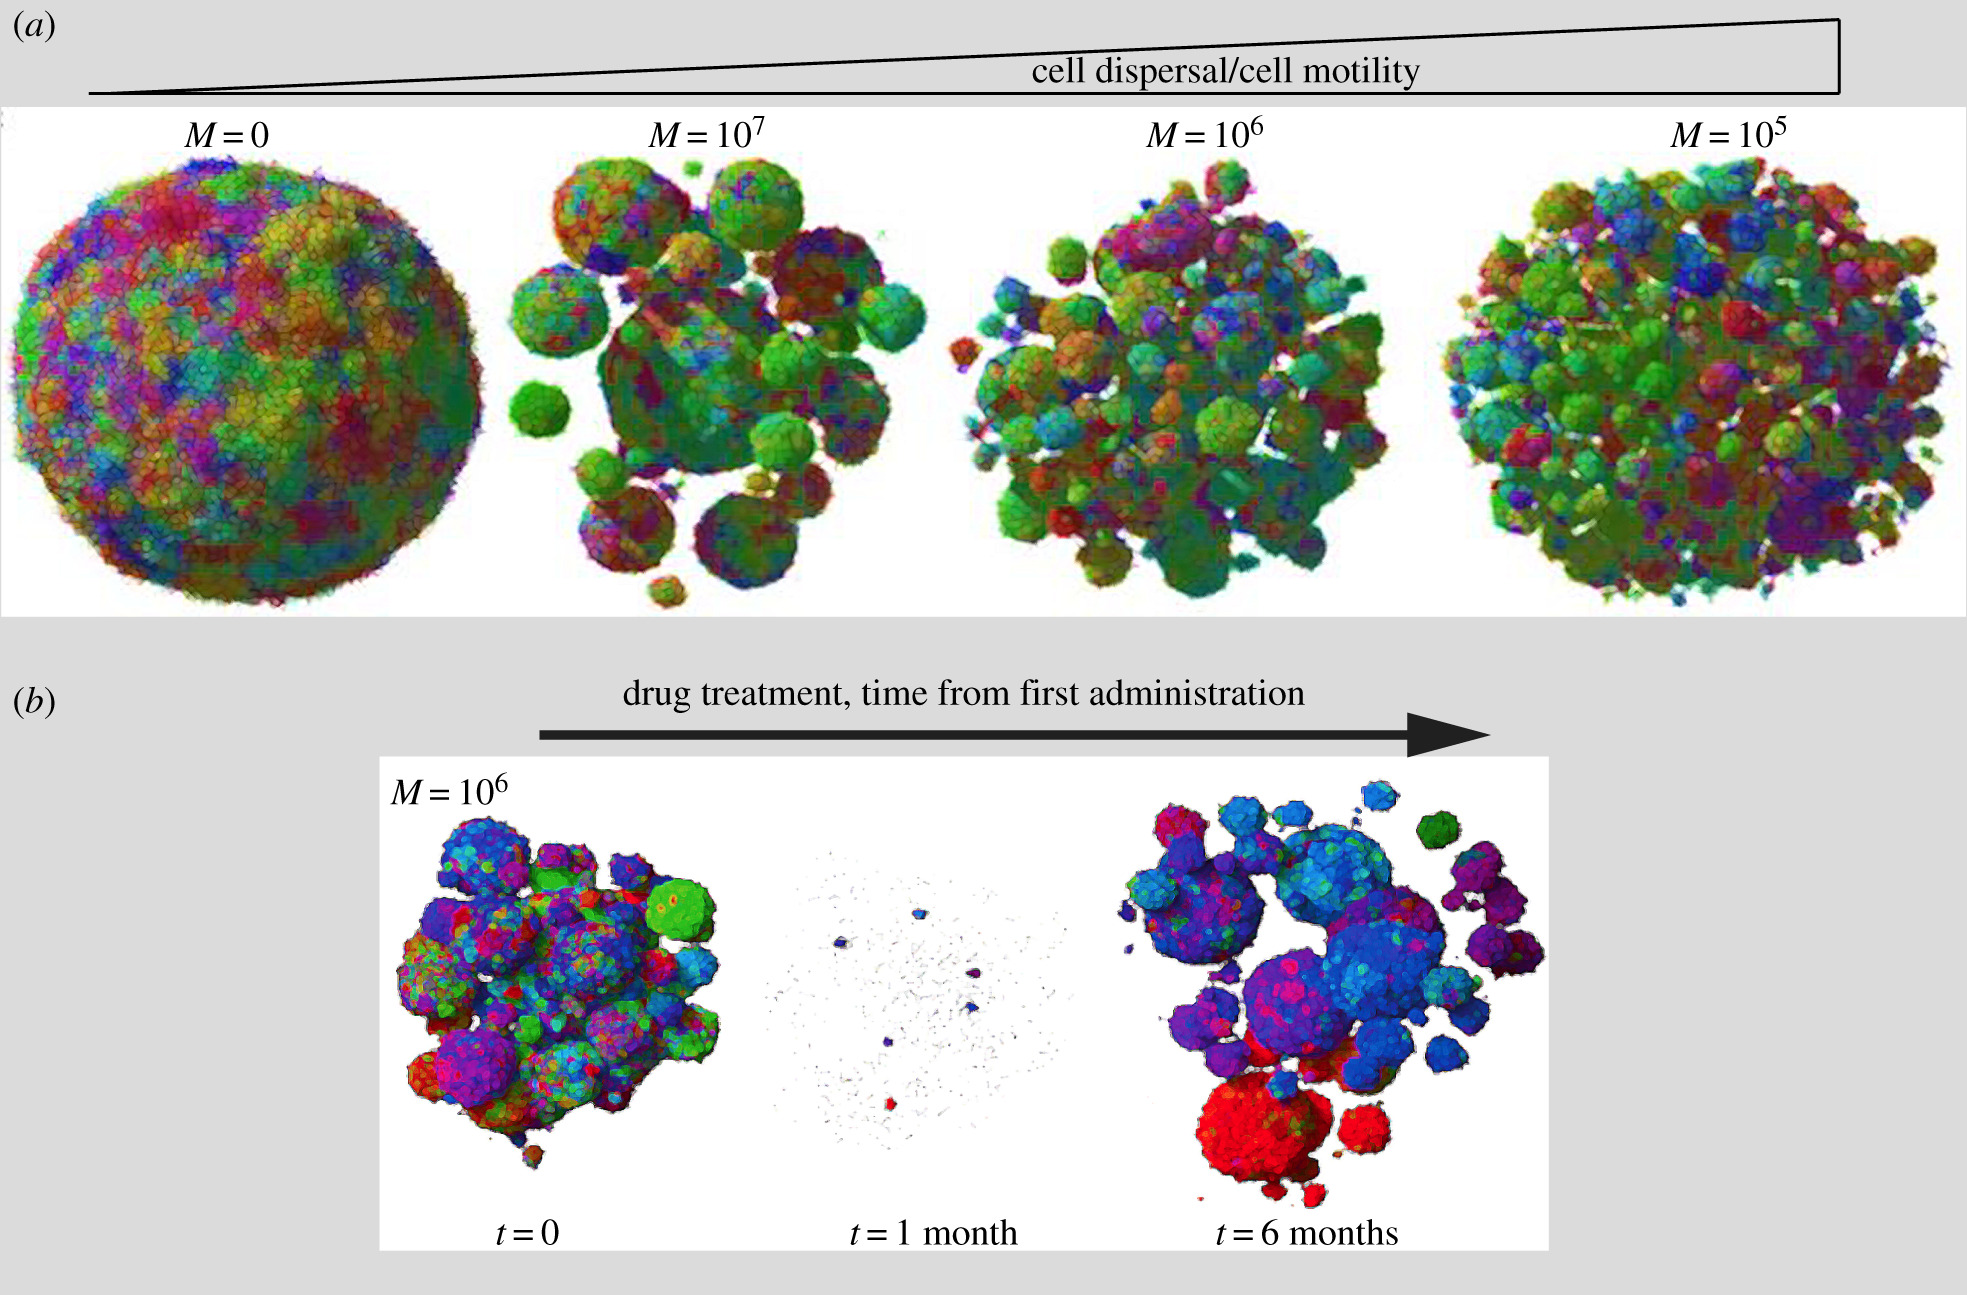 Is cell migration a selectable trait in the natural evolution of